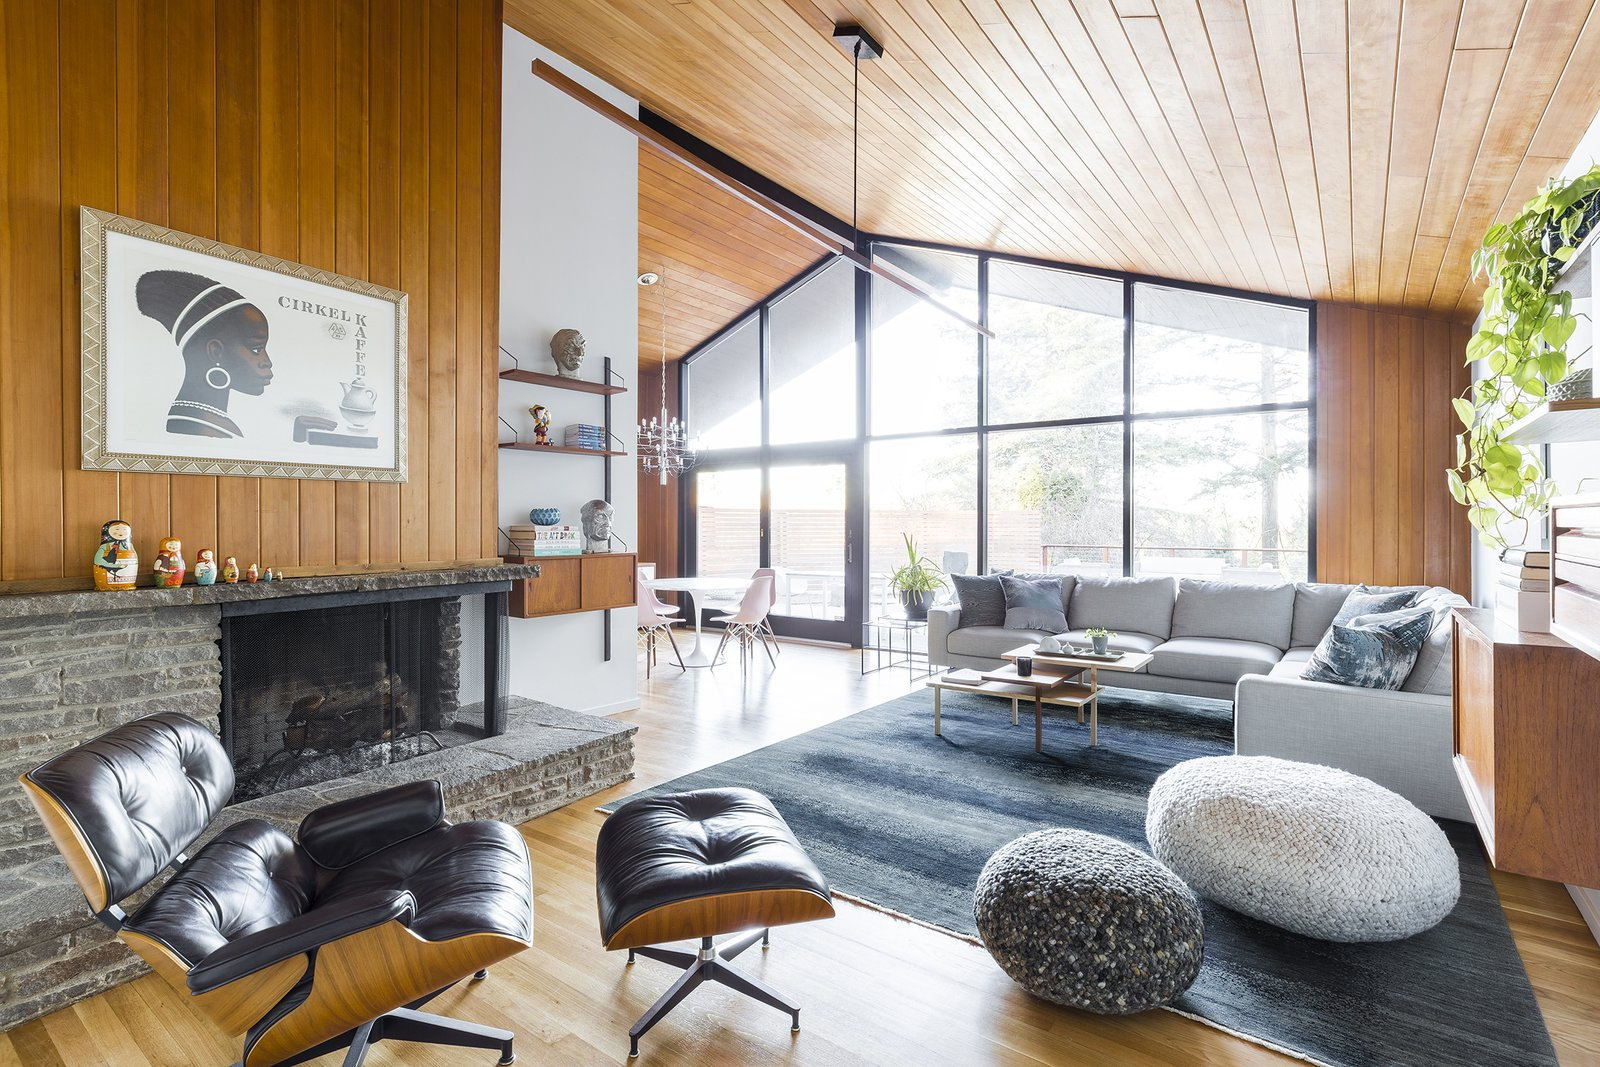 Best Portland Midcentury Renovations - Dwell